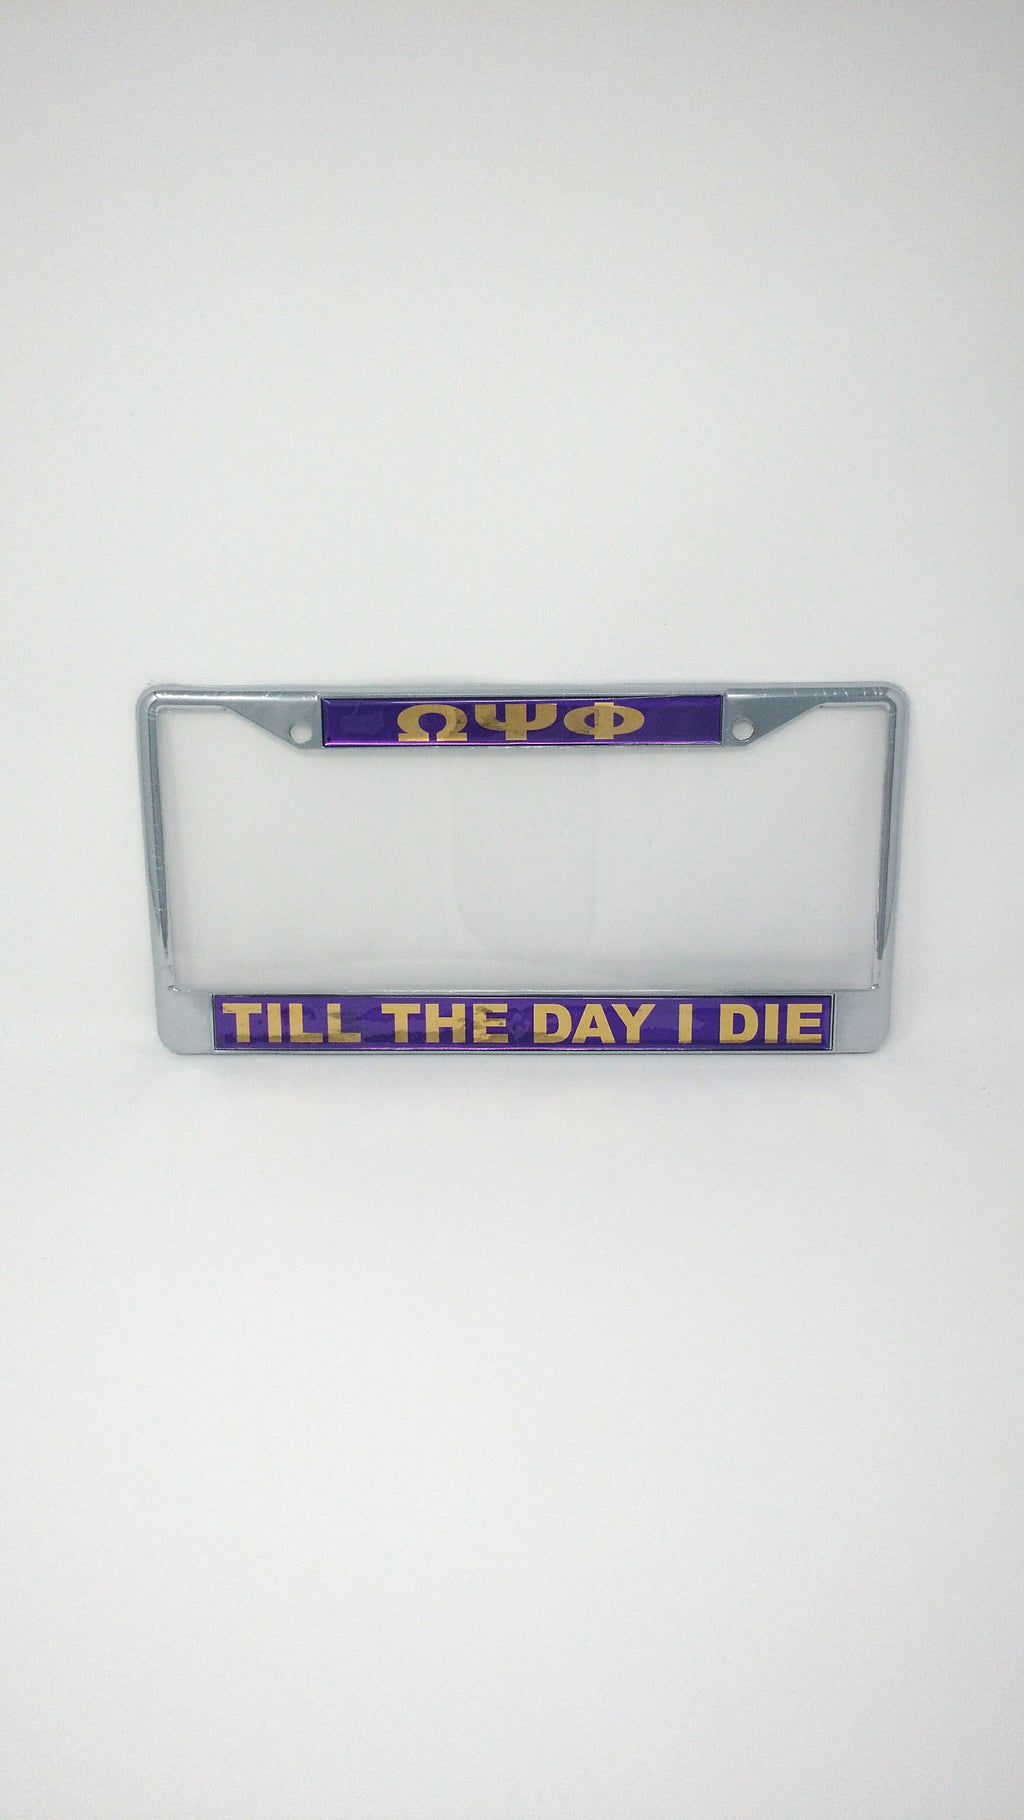 Omega Psi Phi Mirror License Plate Frame: Till The Day I Die